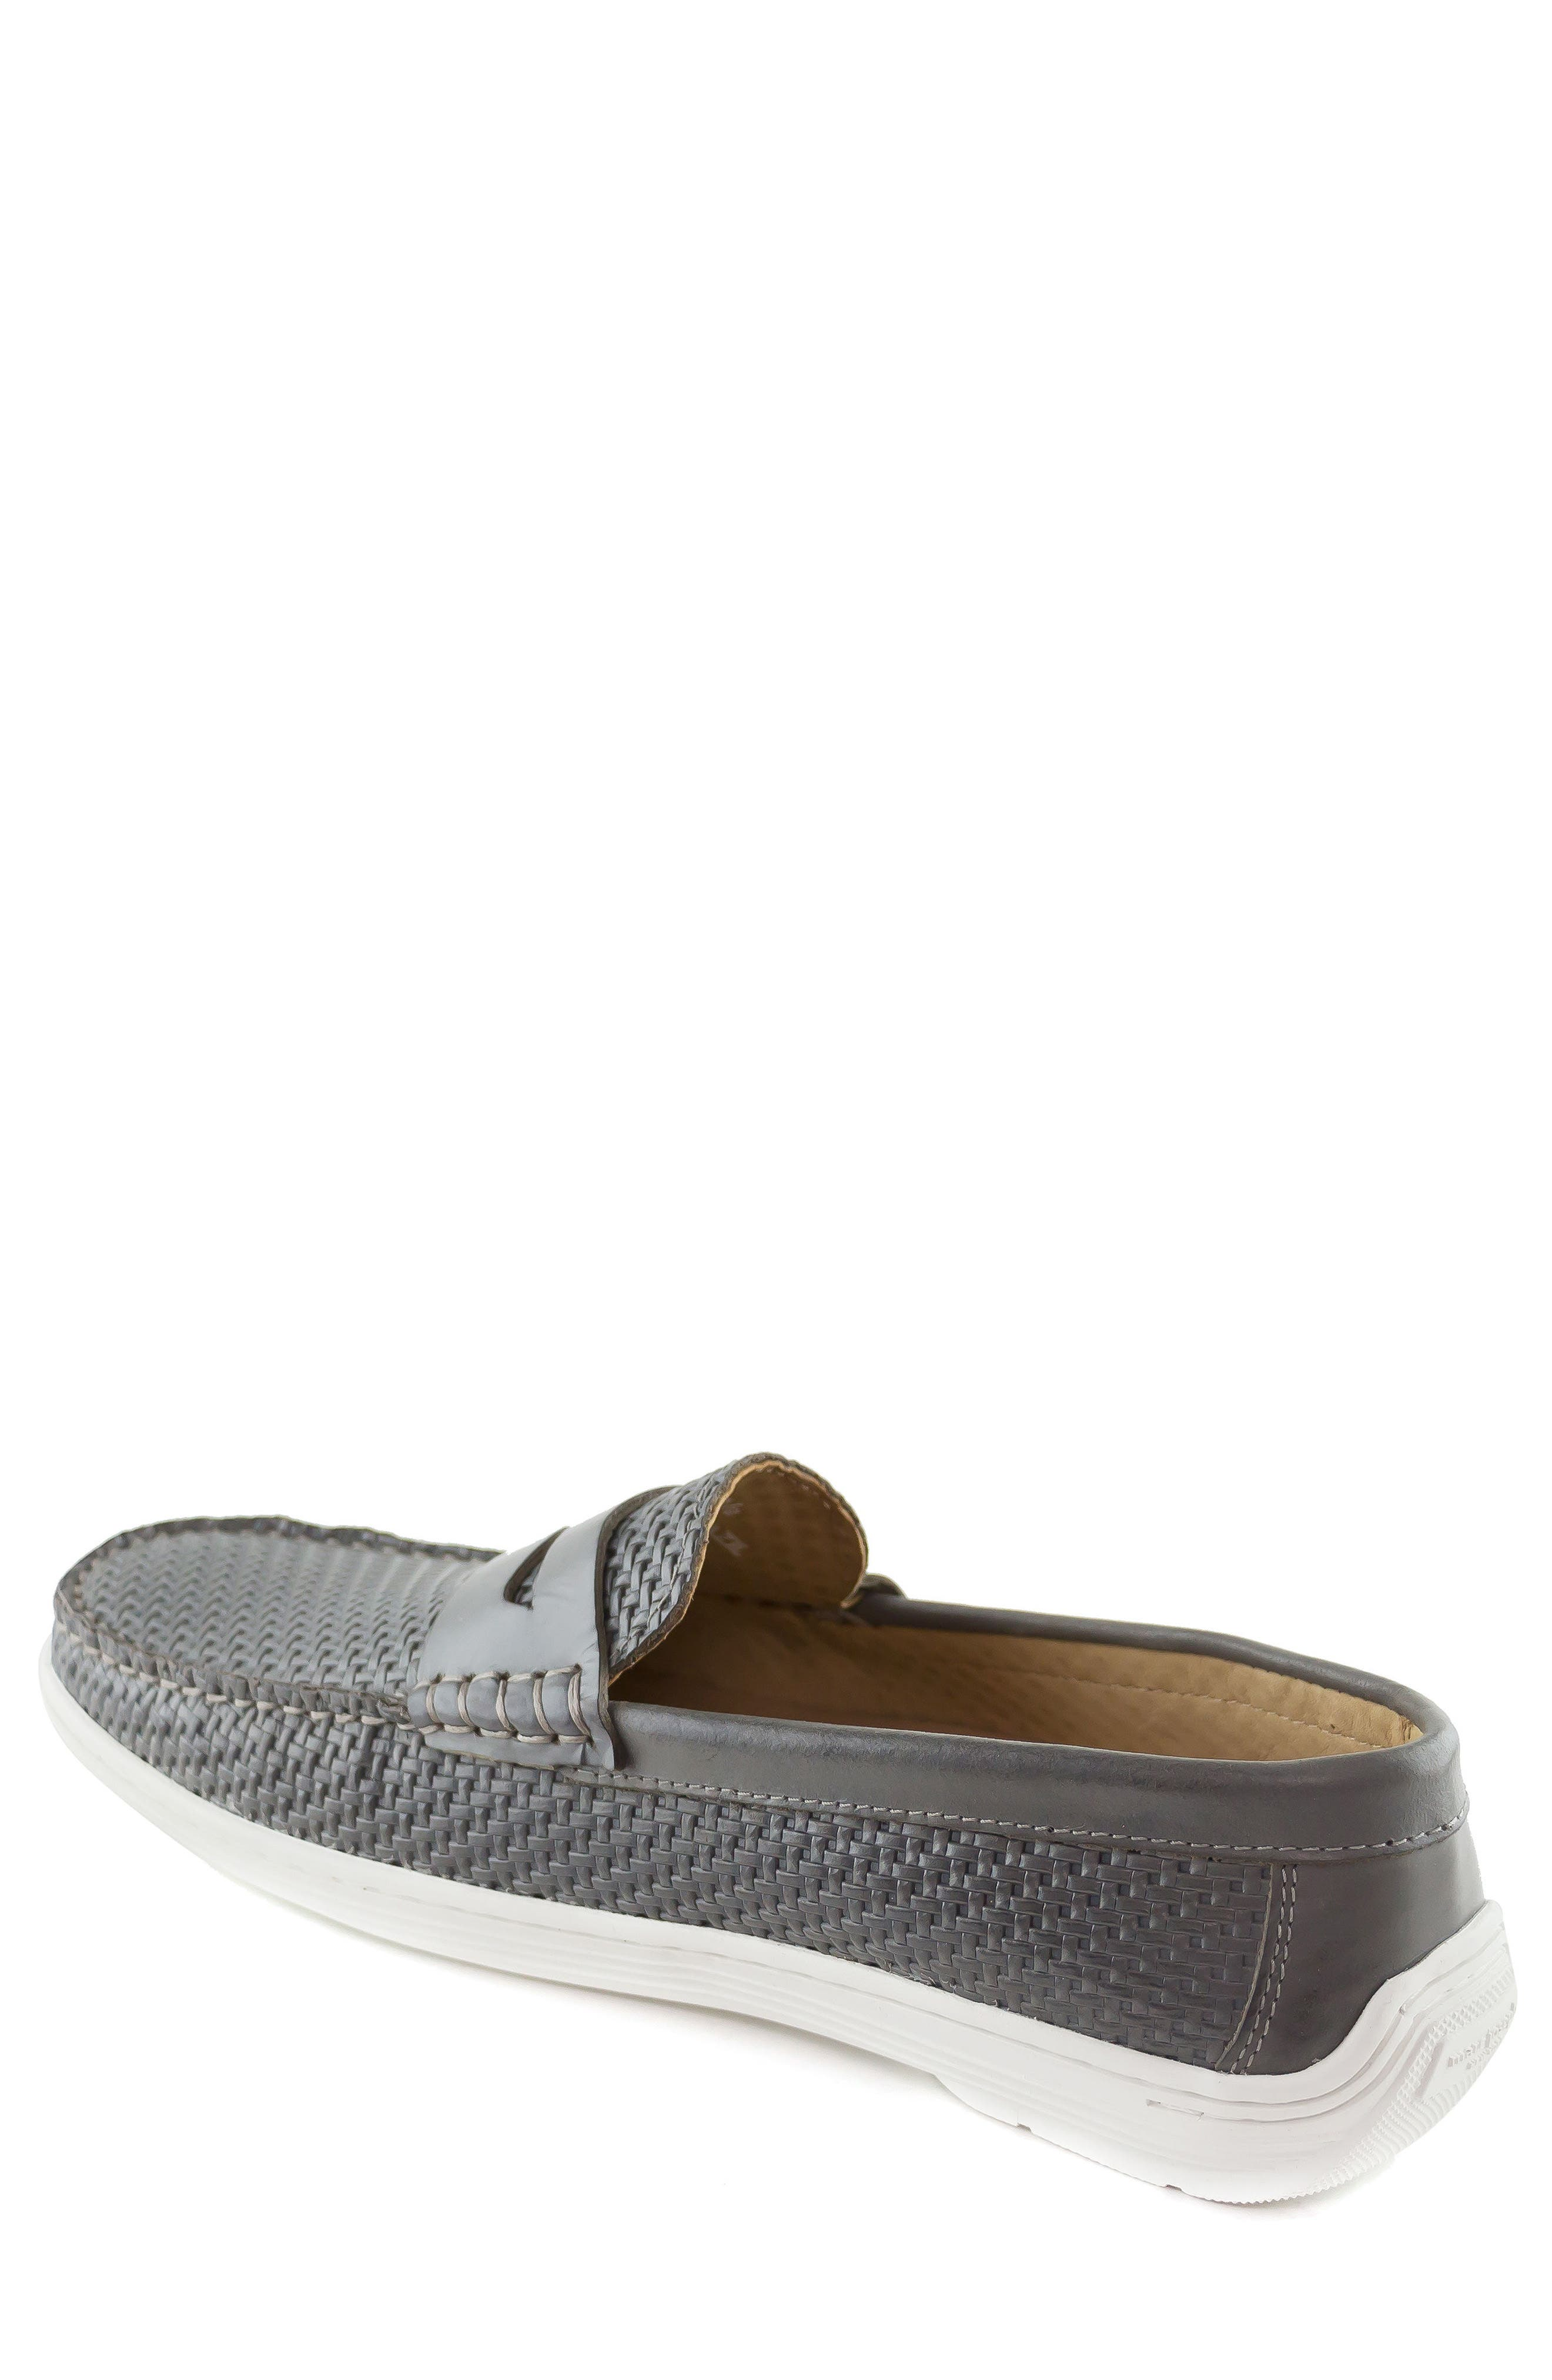 Atlantic Penny Loafer,                             Alternate thumbnail 2, color,                             Grey Leather